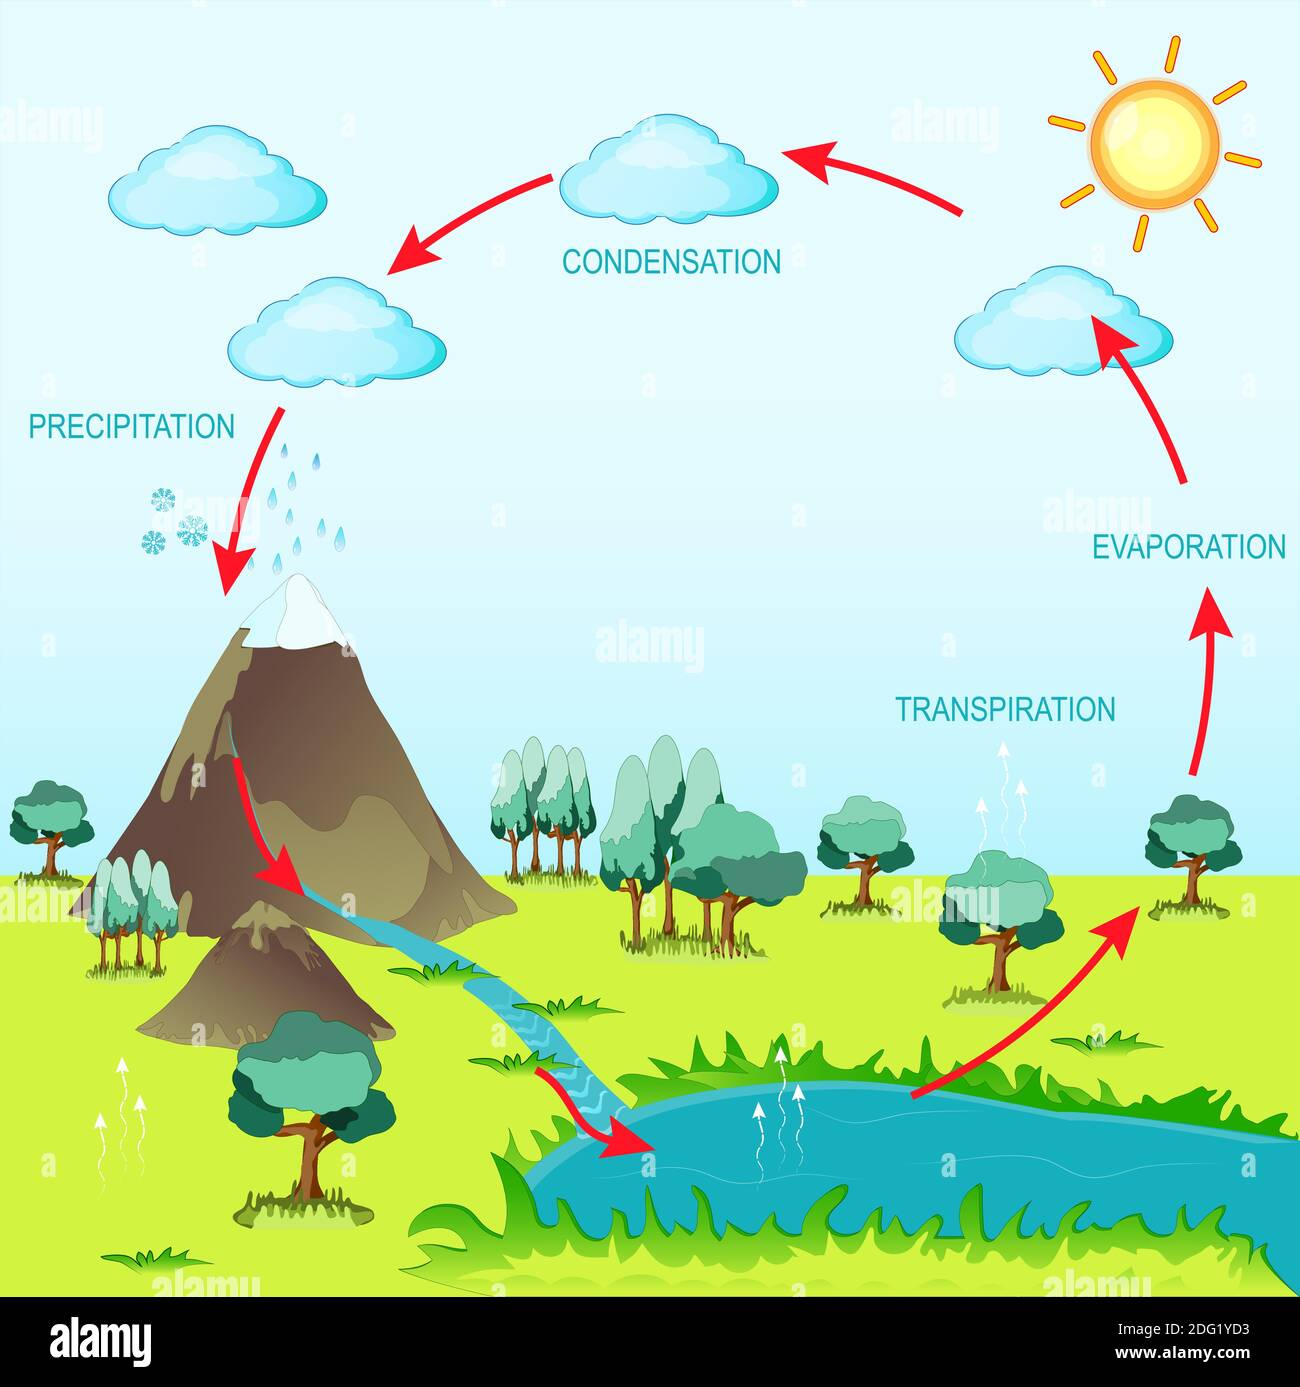 Water Cycle Diagram High Resolution Stock Photography And Images Alamy